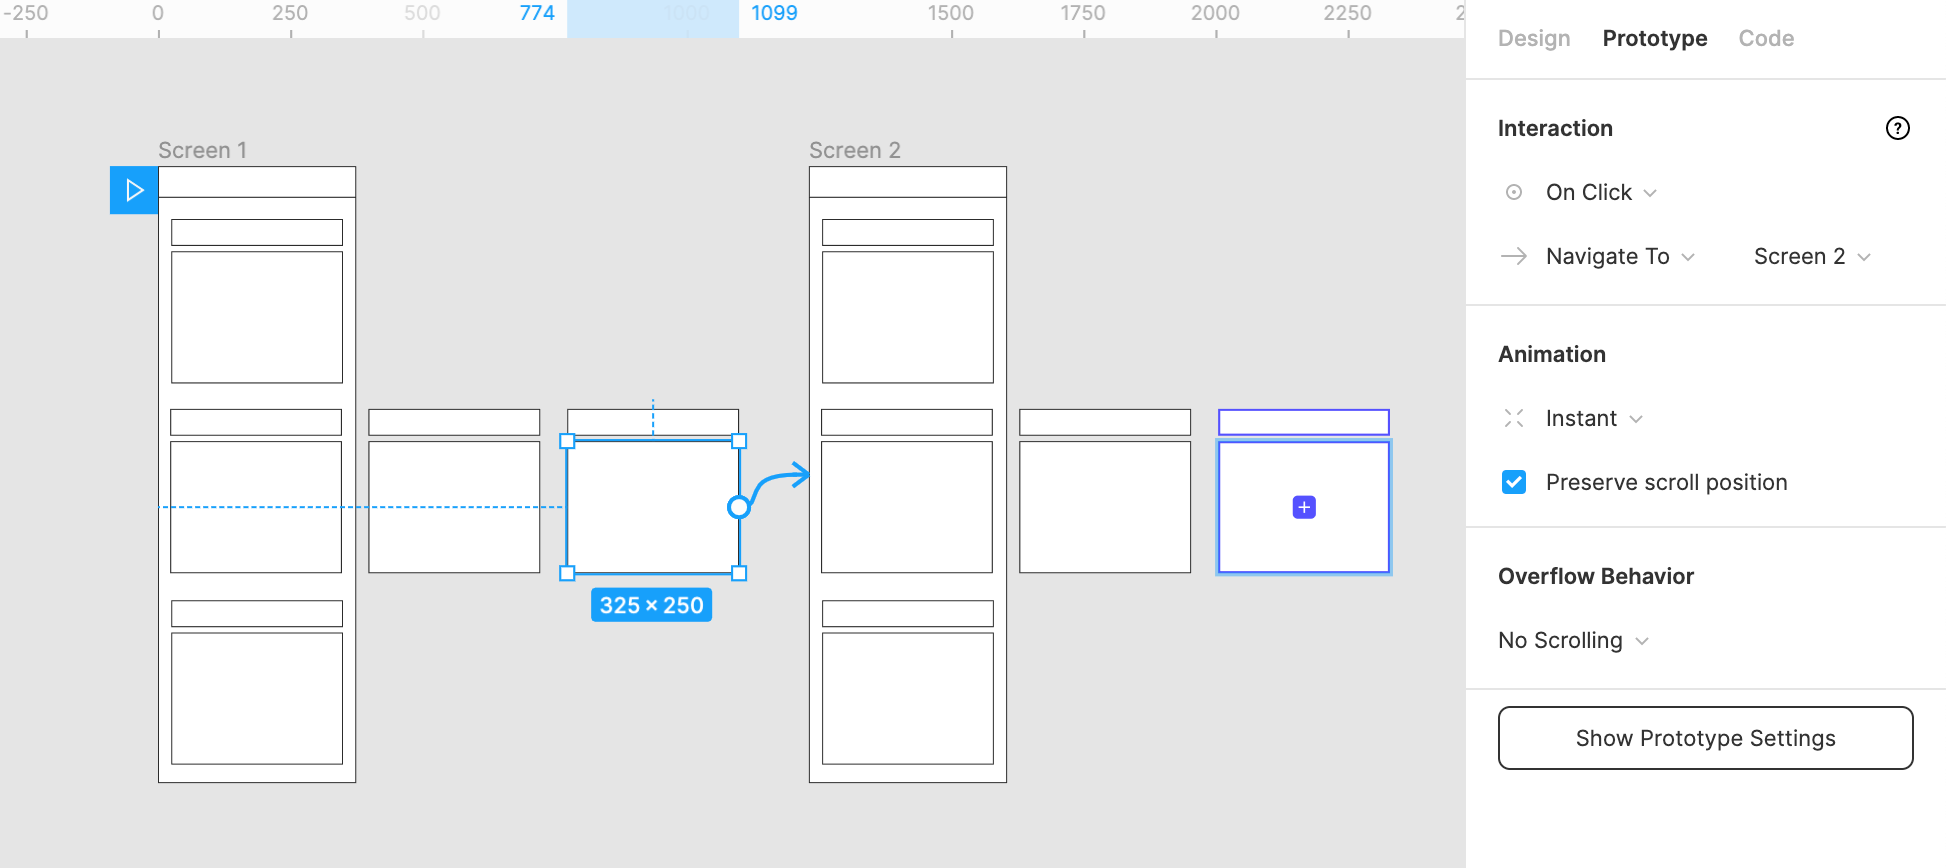 Image of the a prototype in the Figma canvas showing the transition settings for the final object